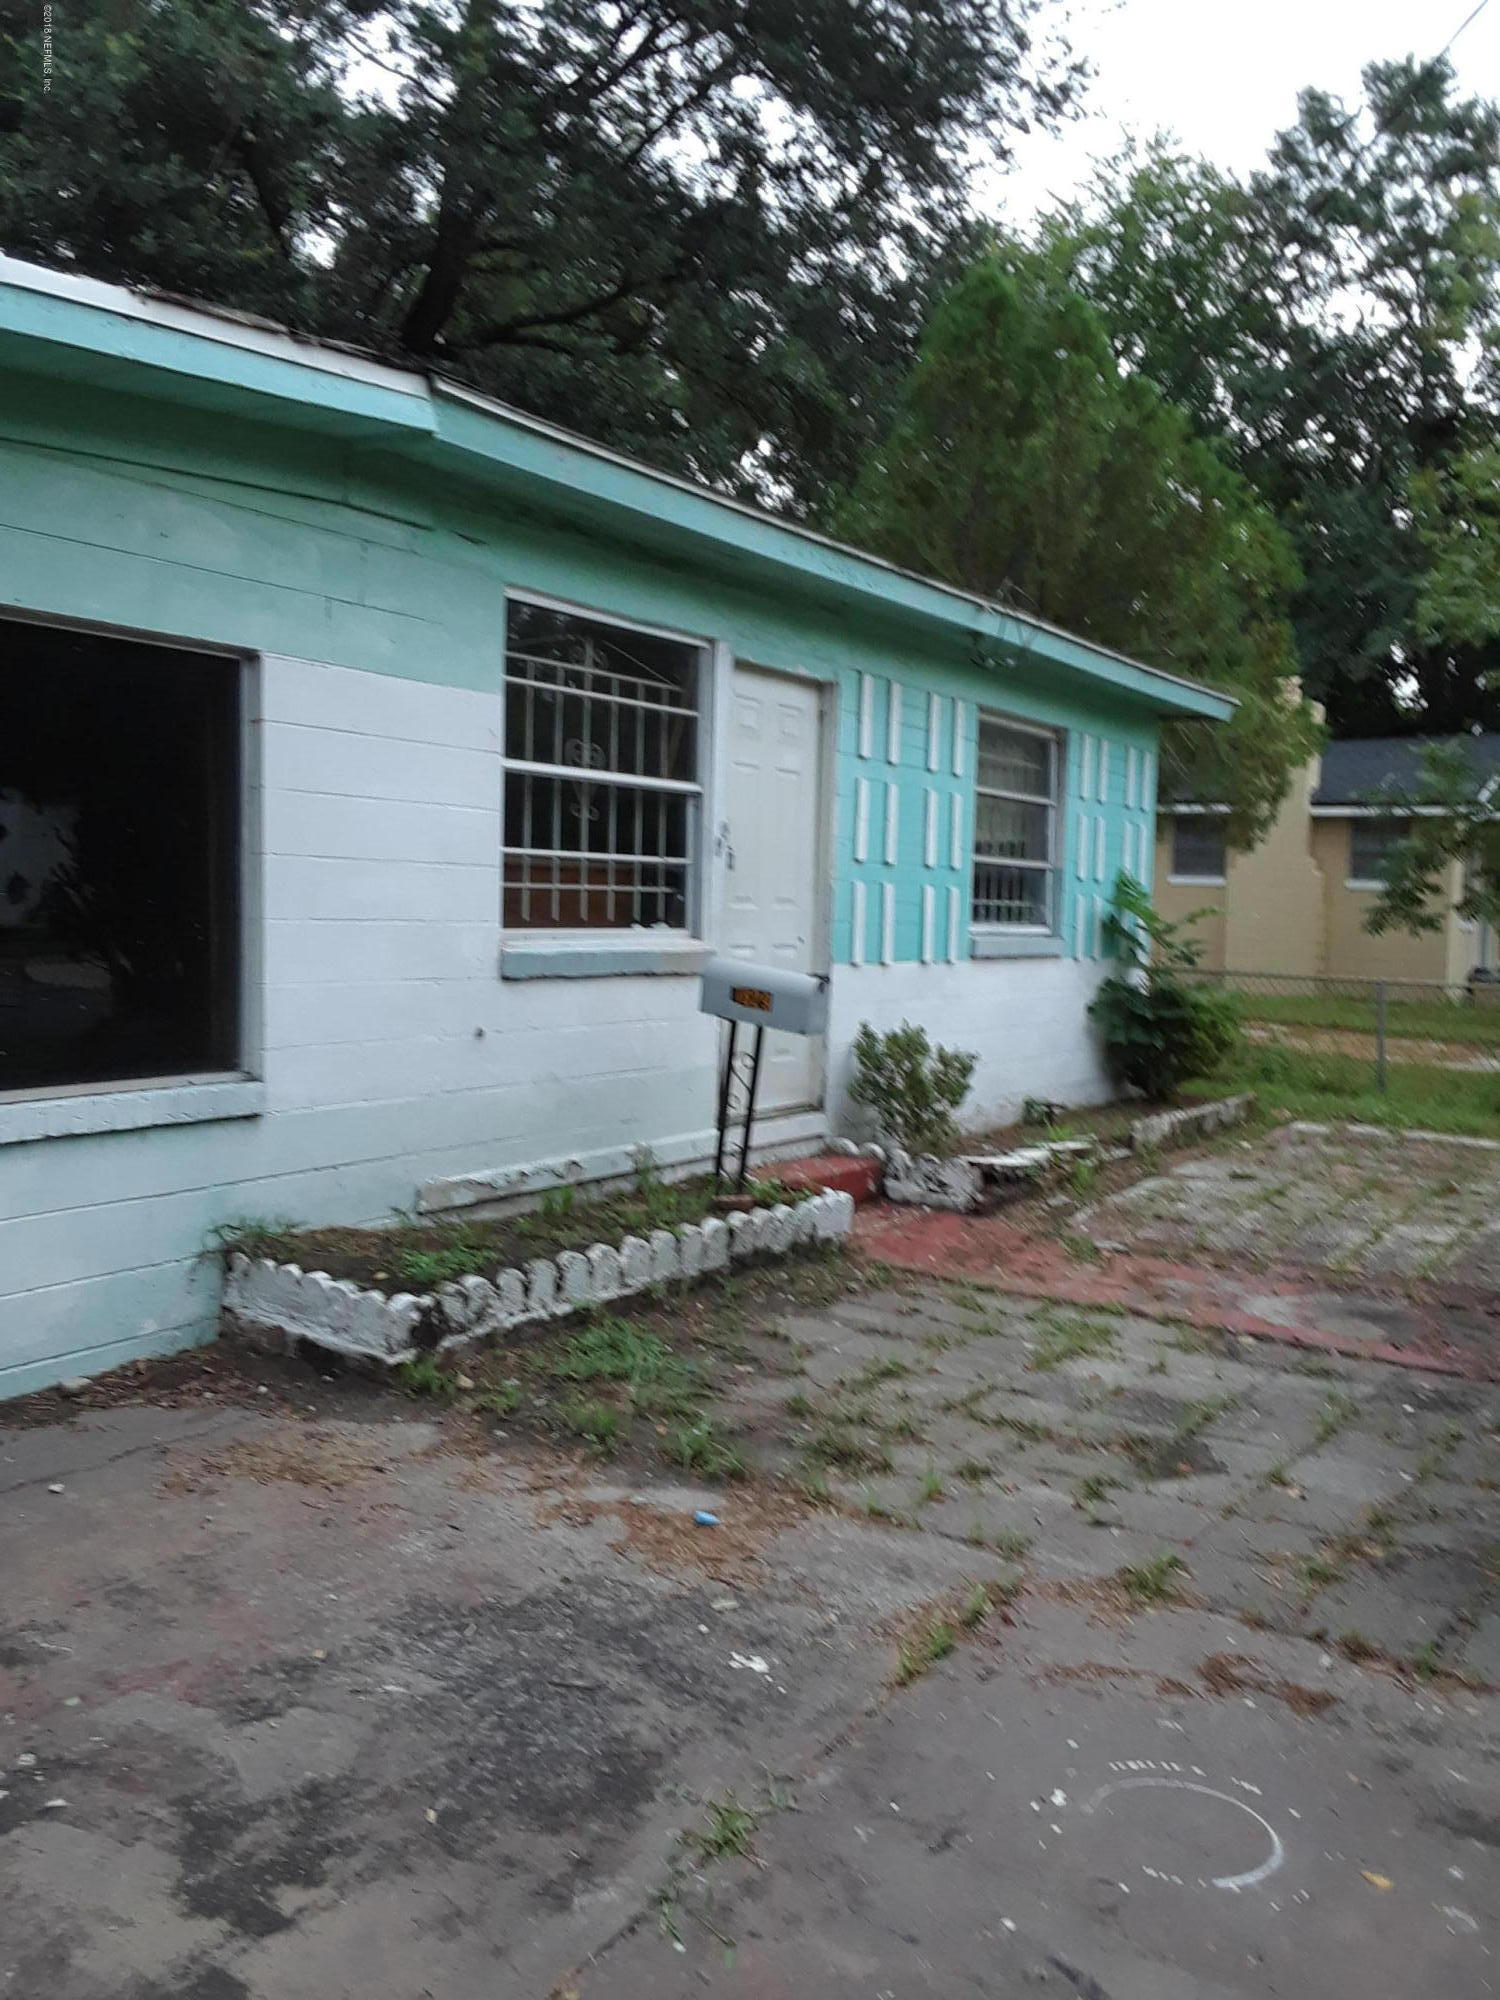 1829 11, JACKSONVILLE, FLORIDA 32209, 3 Bedrooms Bedrooms, ,1 BathroomBathrooms,Residential - single family,For sale,11,940171